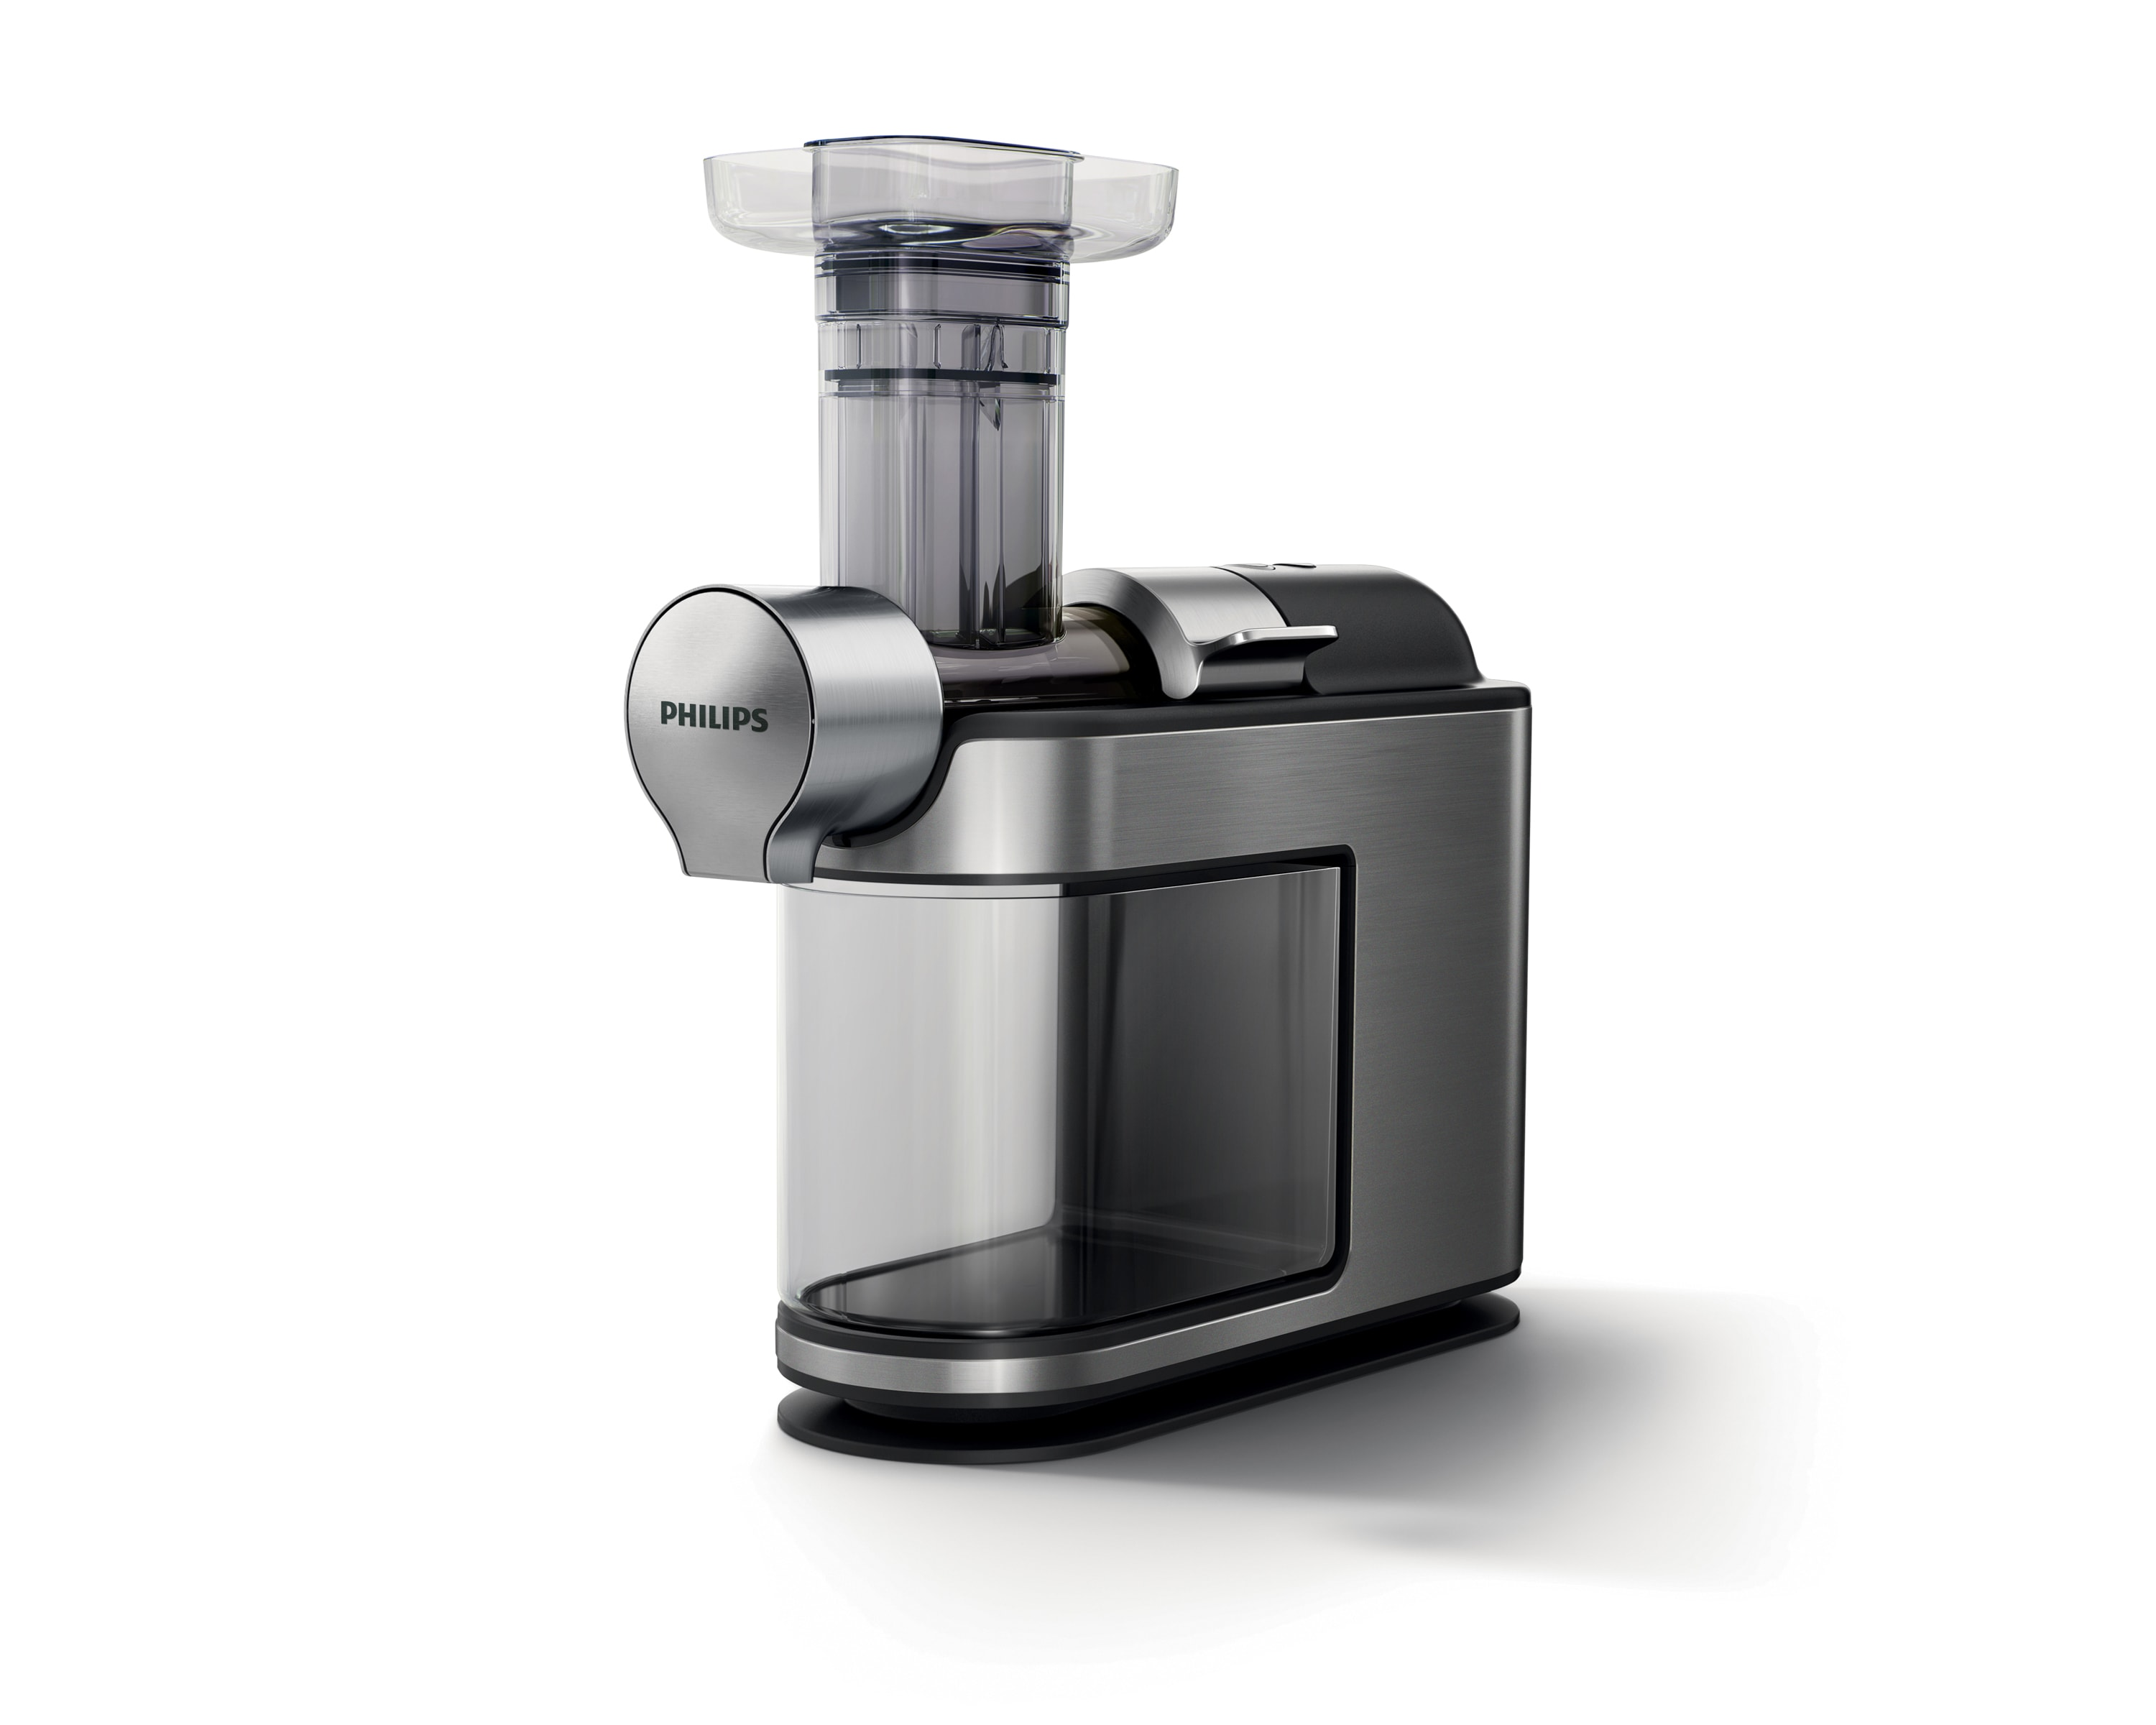 Slow Juicer Philips Hr : Philips Avance Slow Juicer - News center Philips